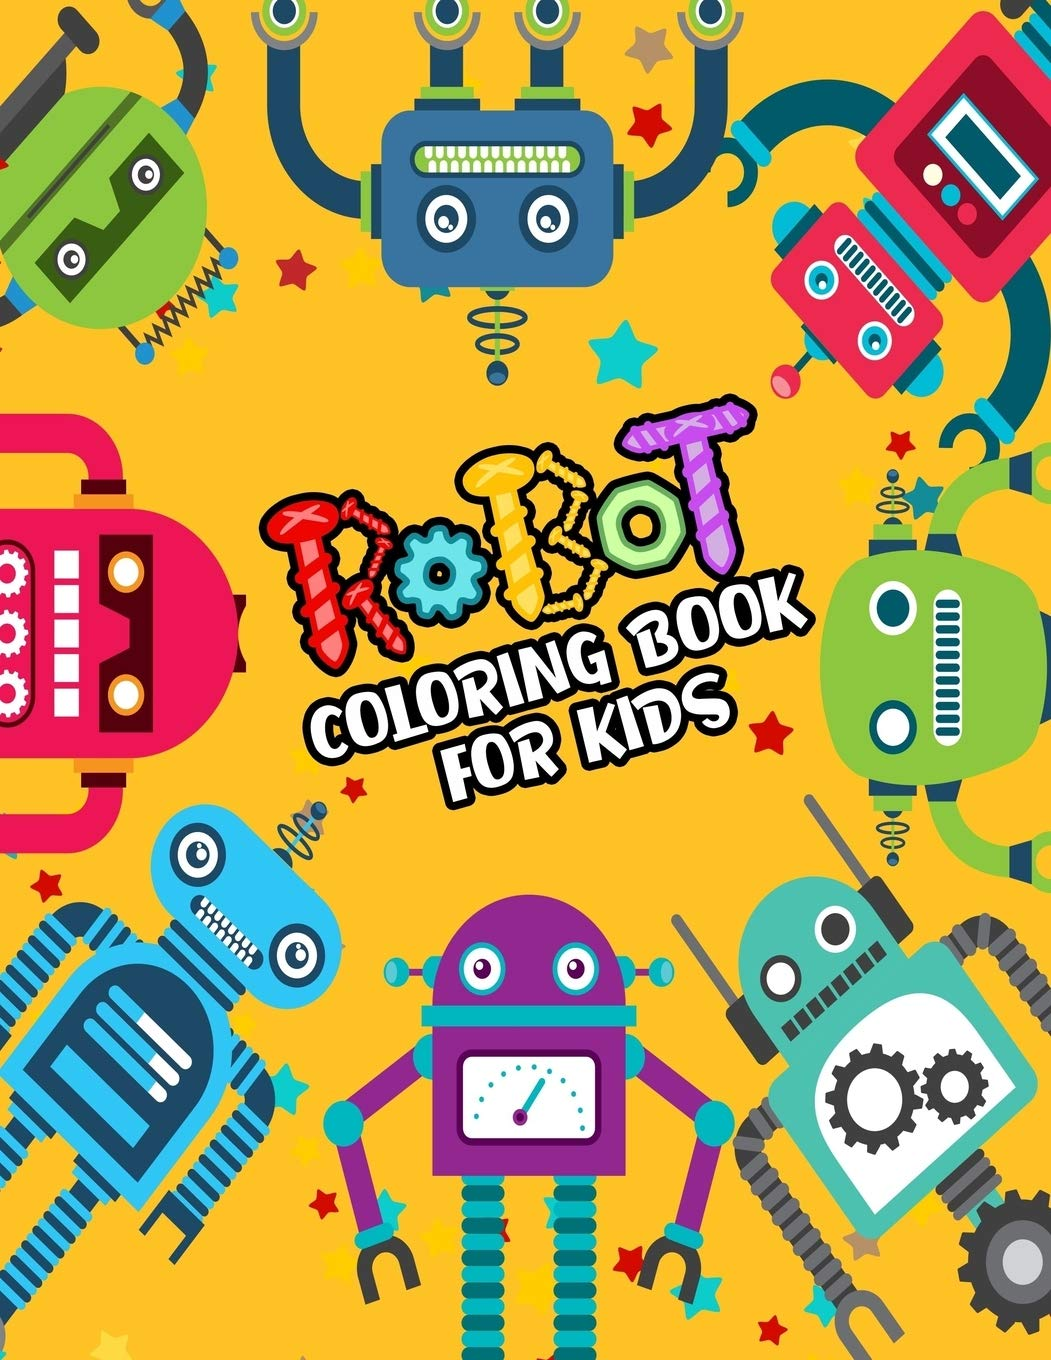 - Robot Coloring Book For Kids: Cute Robots Coloring Book For Kids